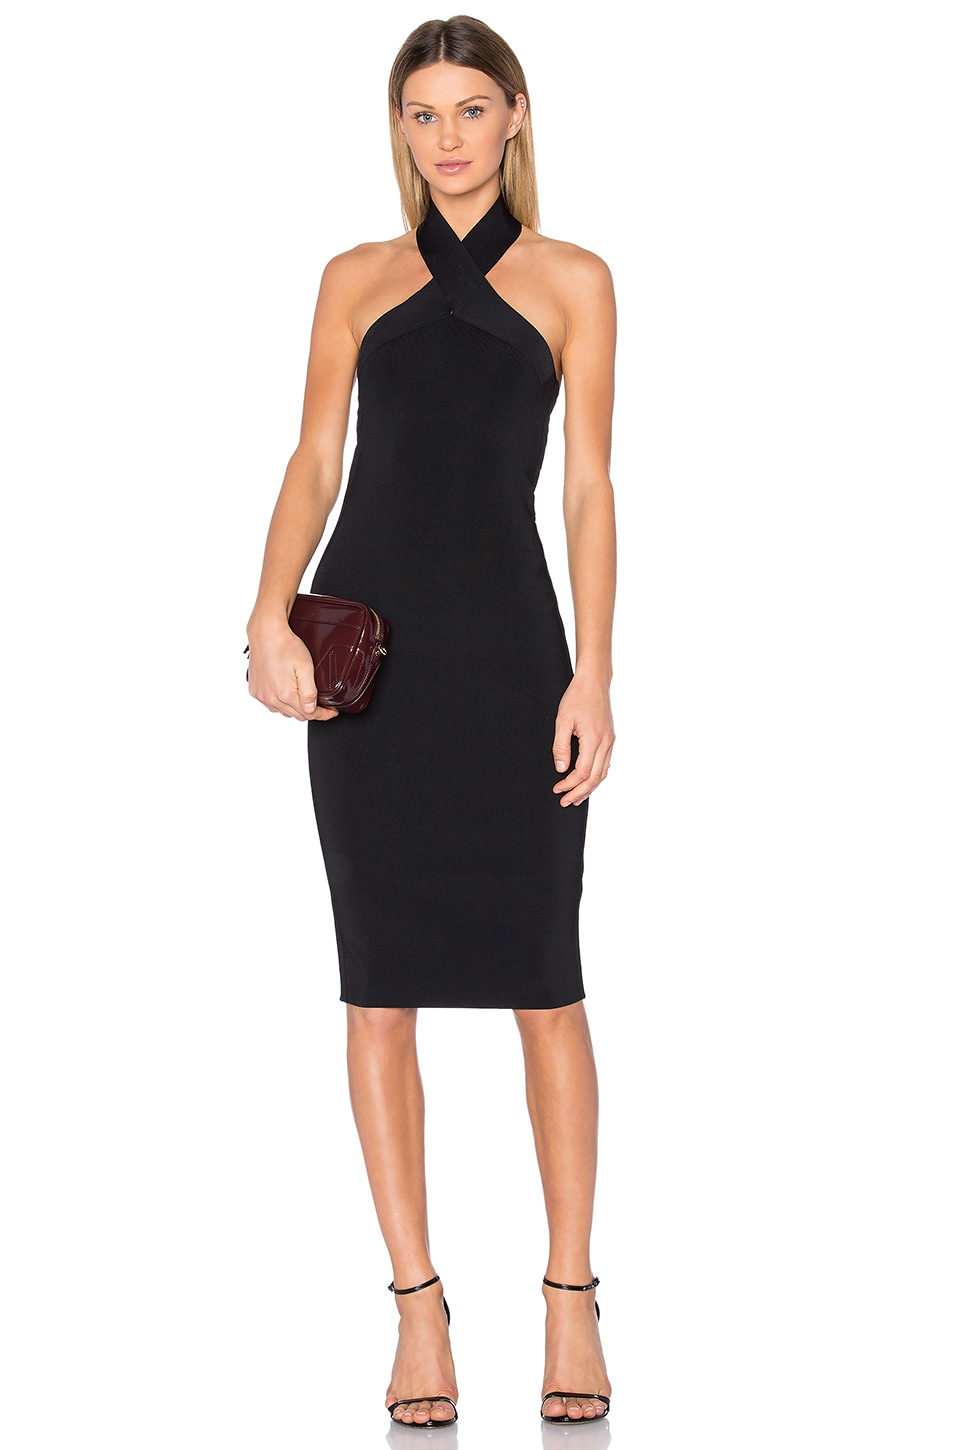 Knit Halter Dress by T by Alexander Wang